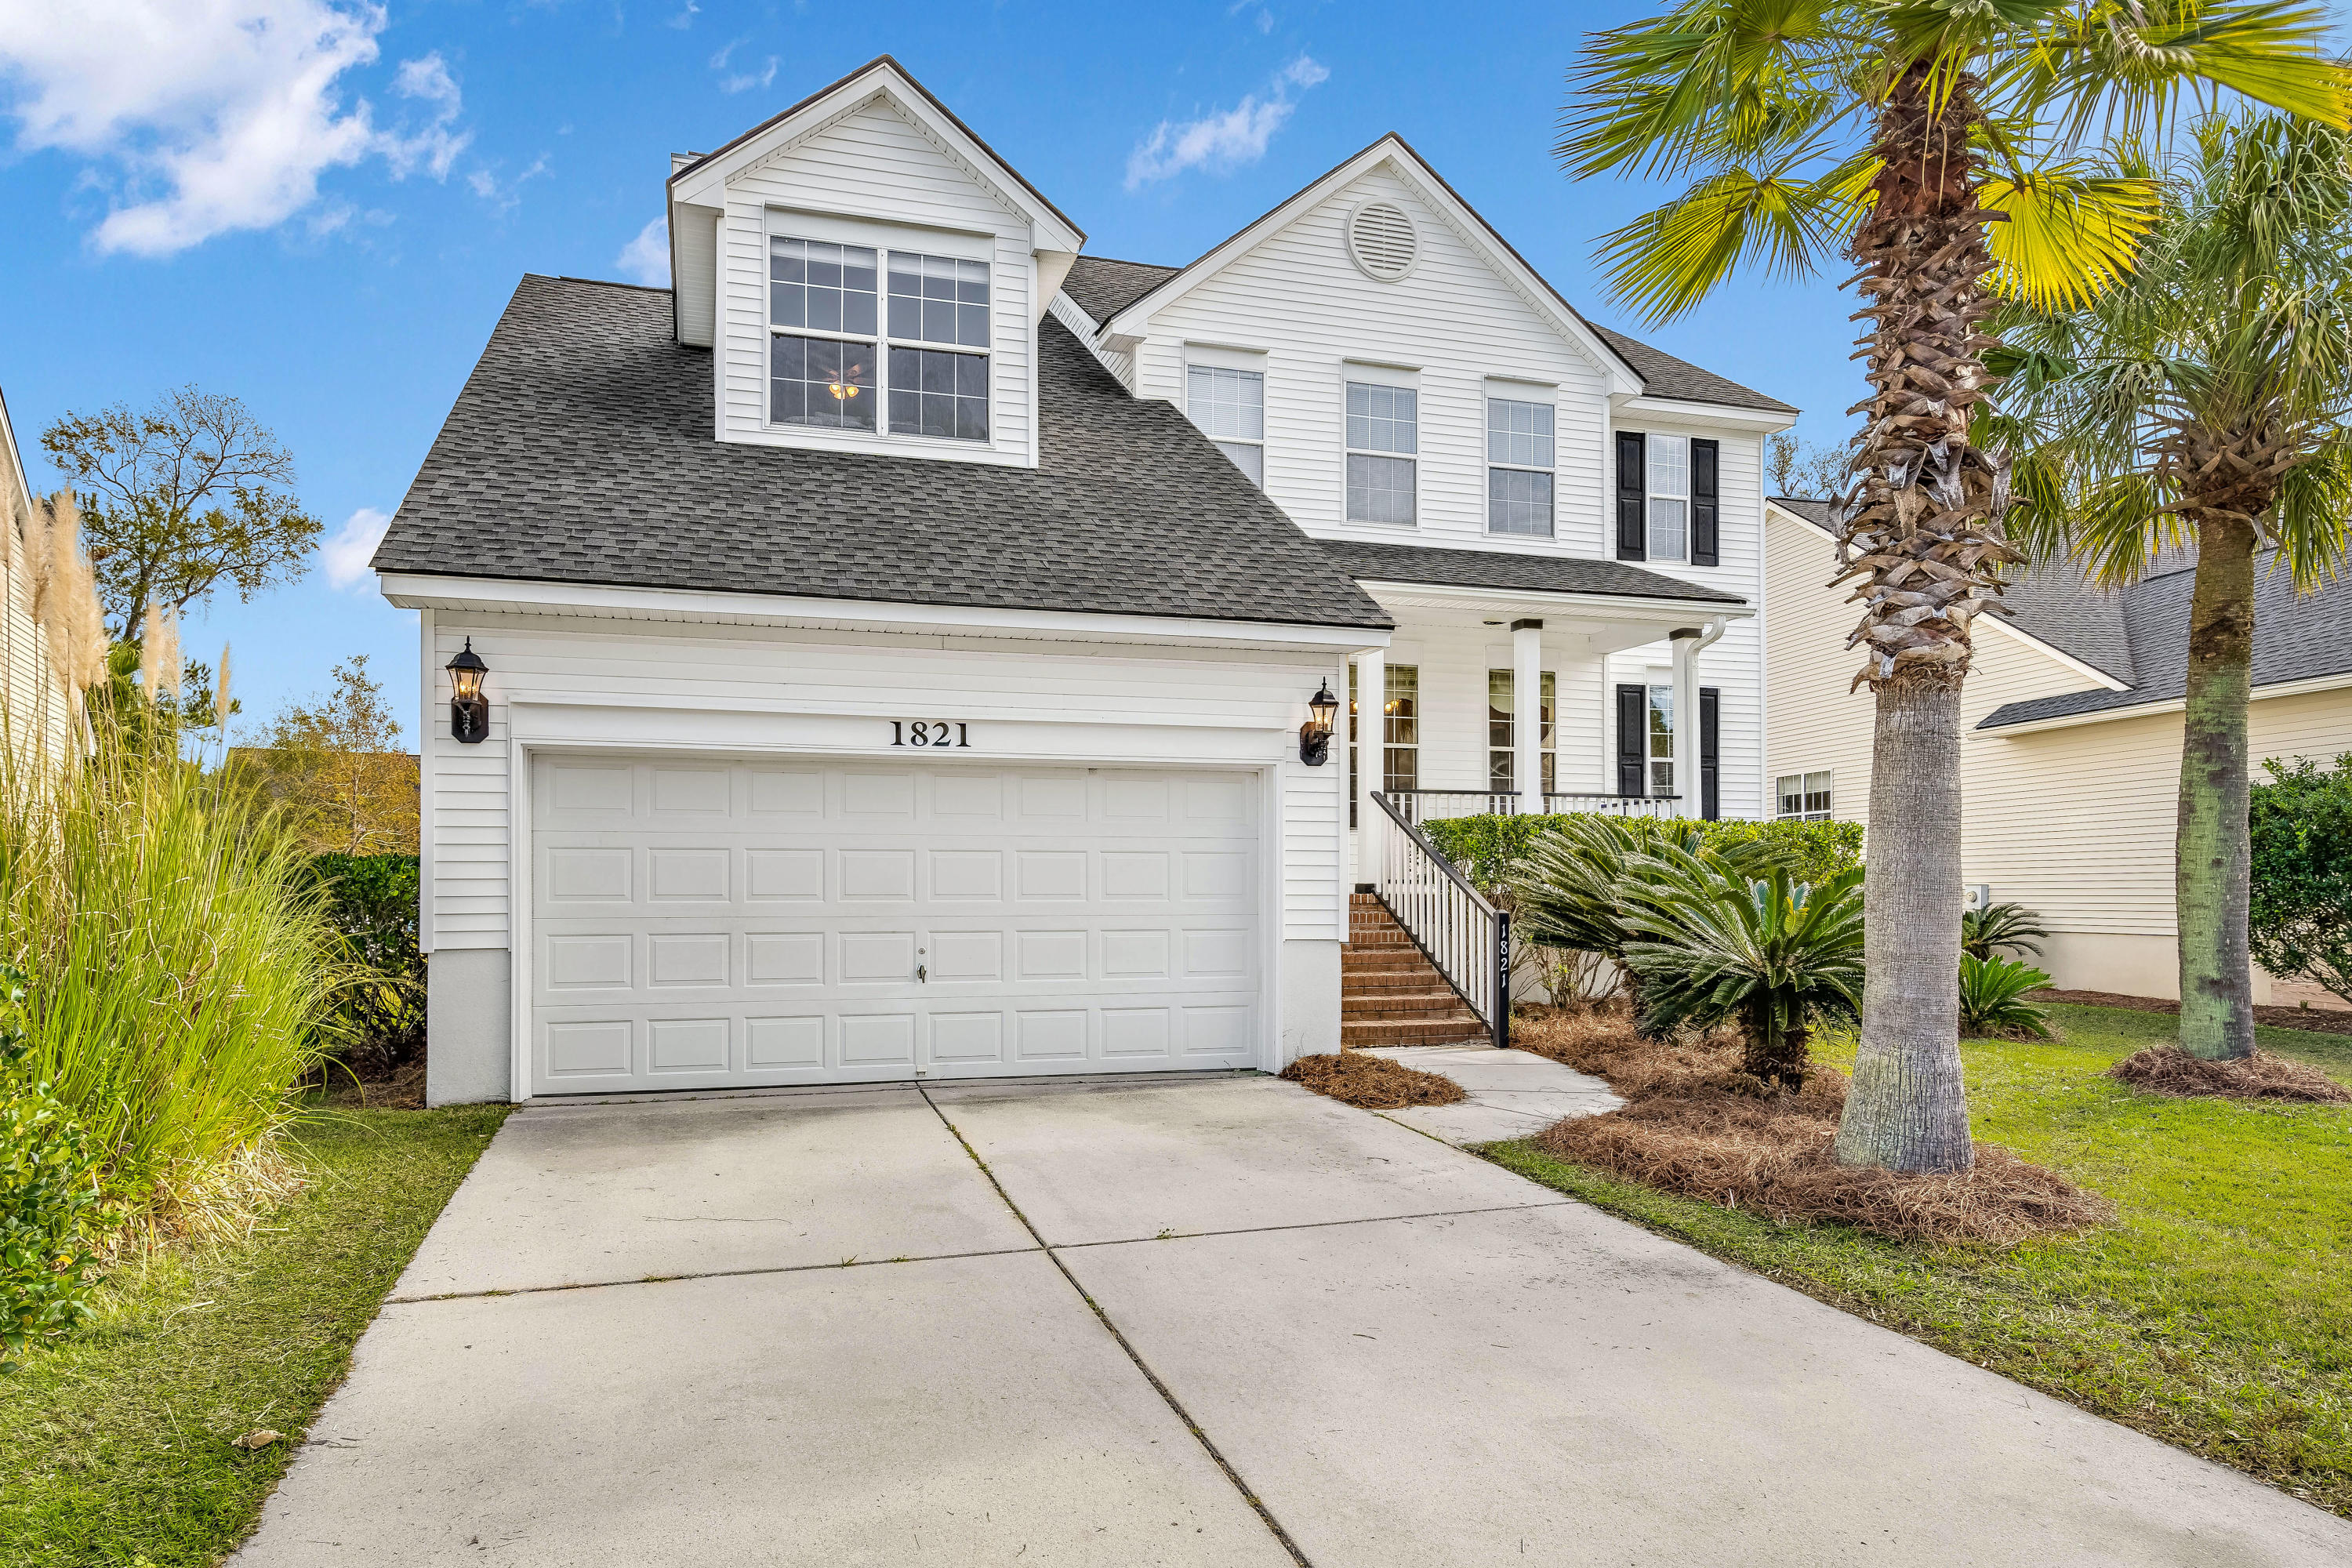 Rivertowne Country Club Homes For Sale - 1821 Great Hope, Mount Pleasant, SC - 8